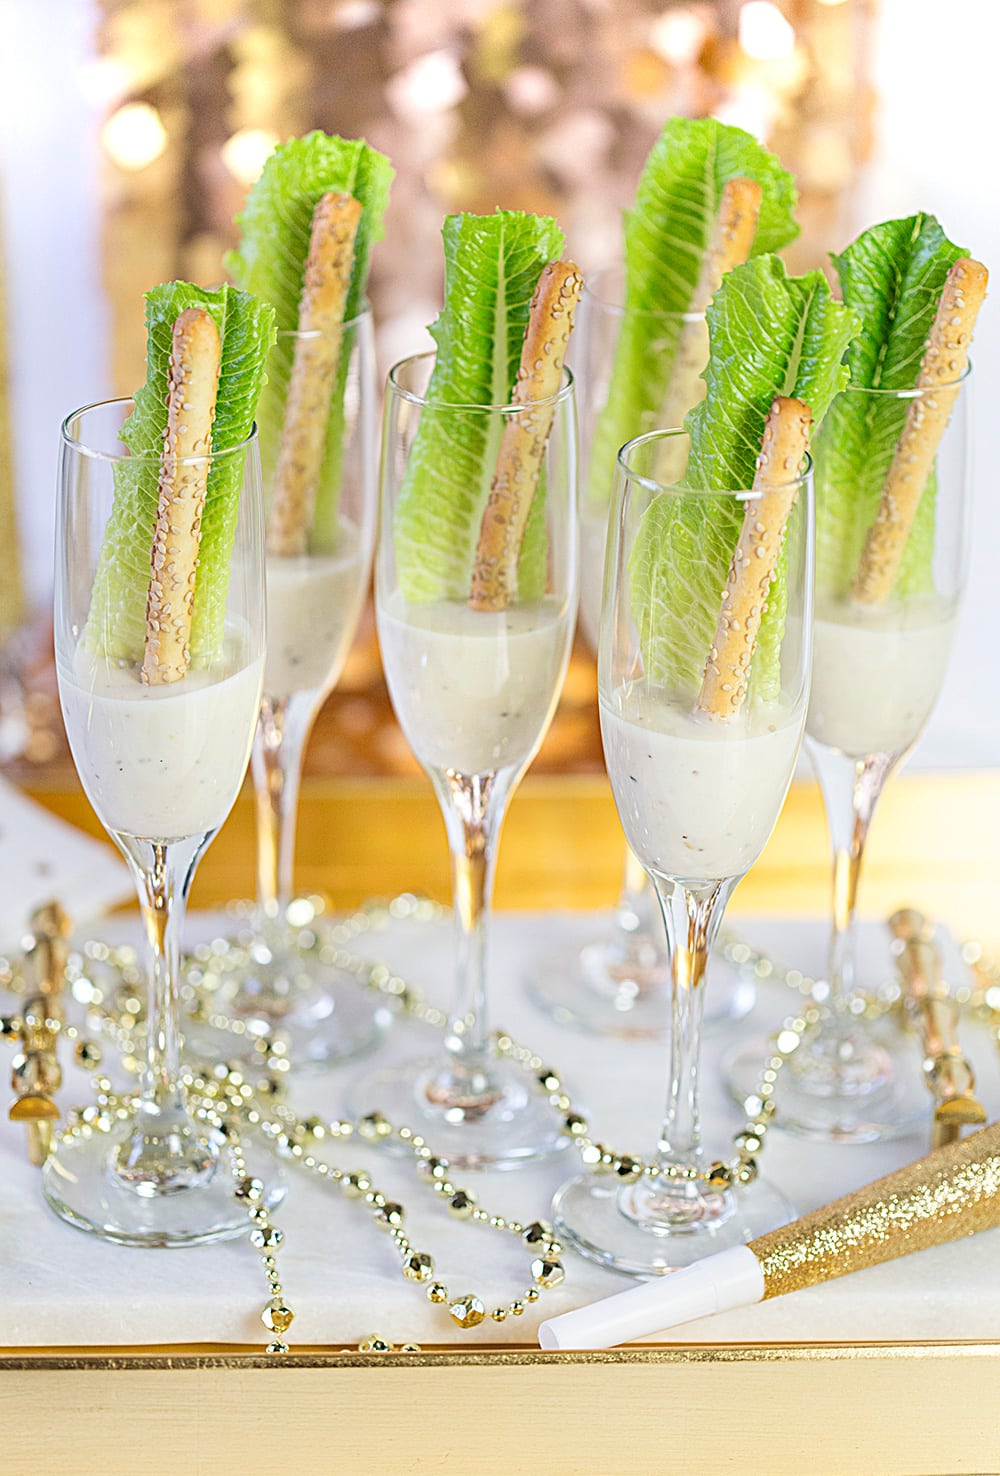 New Year's Eve Champagne Salad Recipe